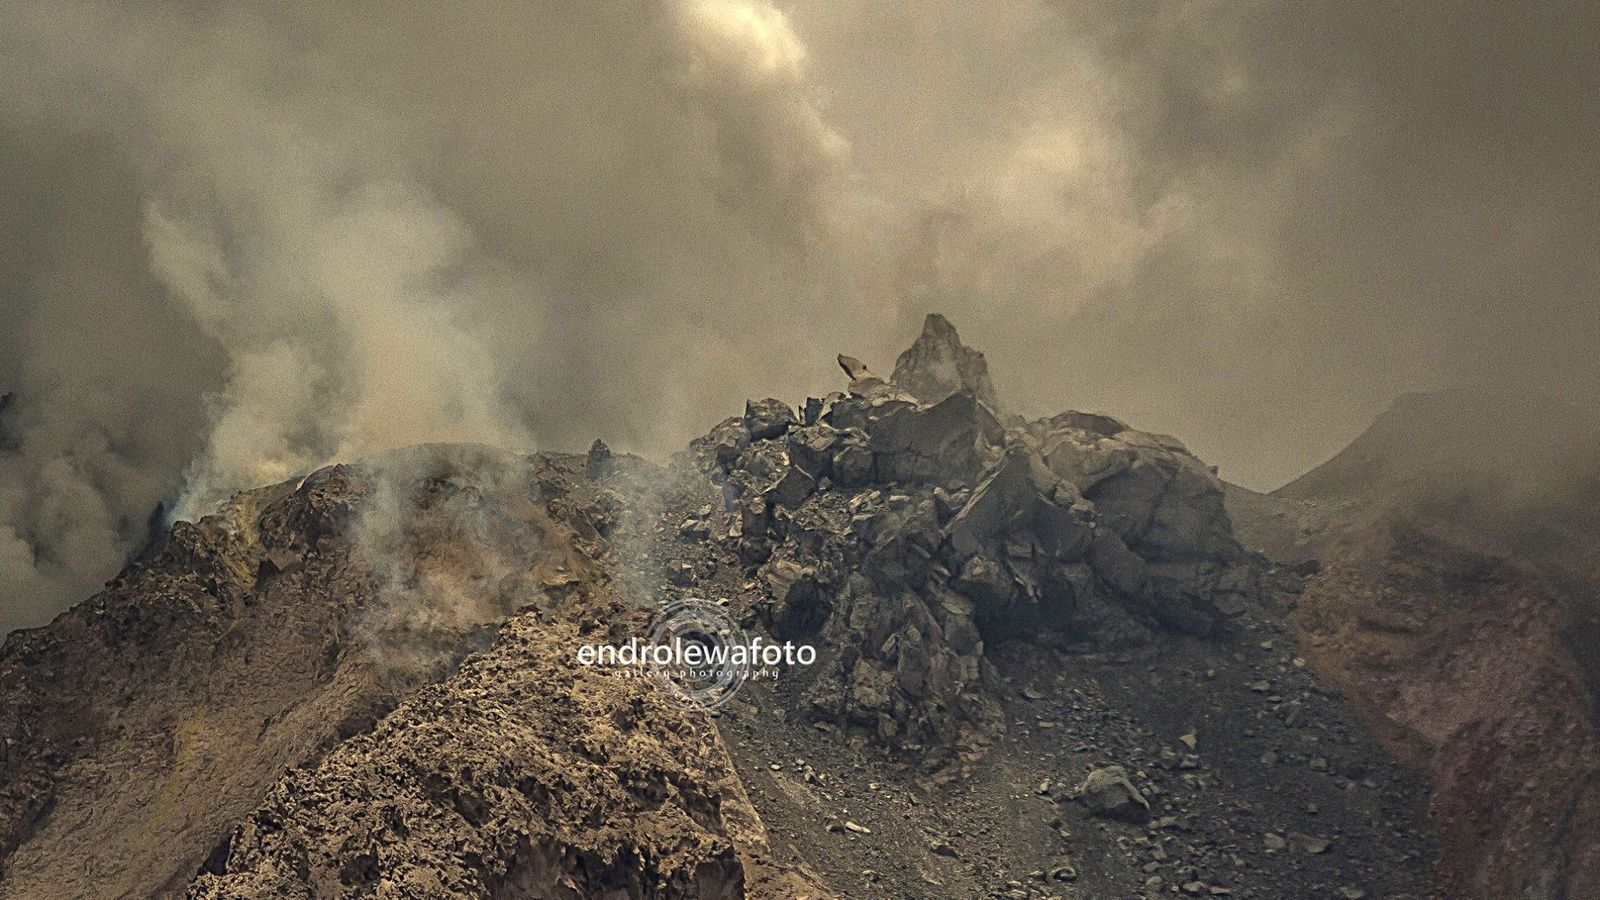 Sinabung, the dome - 16.03.2016 / 12h58 pm. - Photo endrolewa